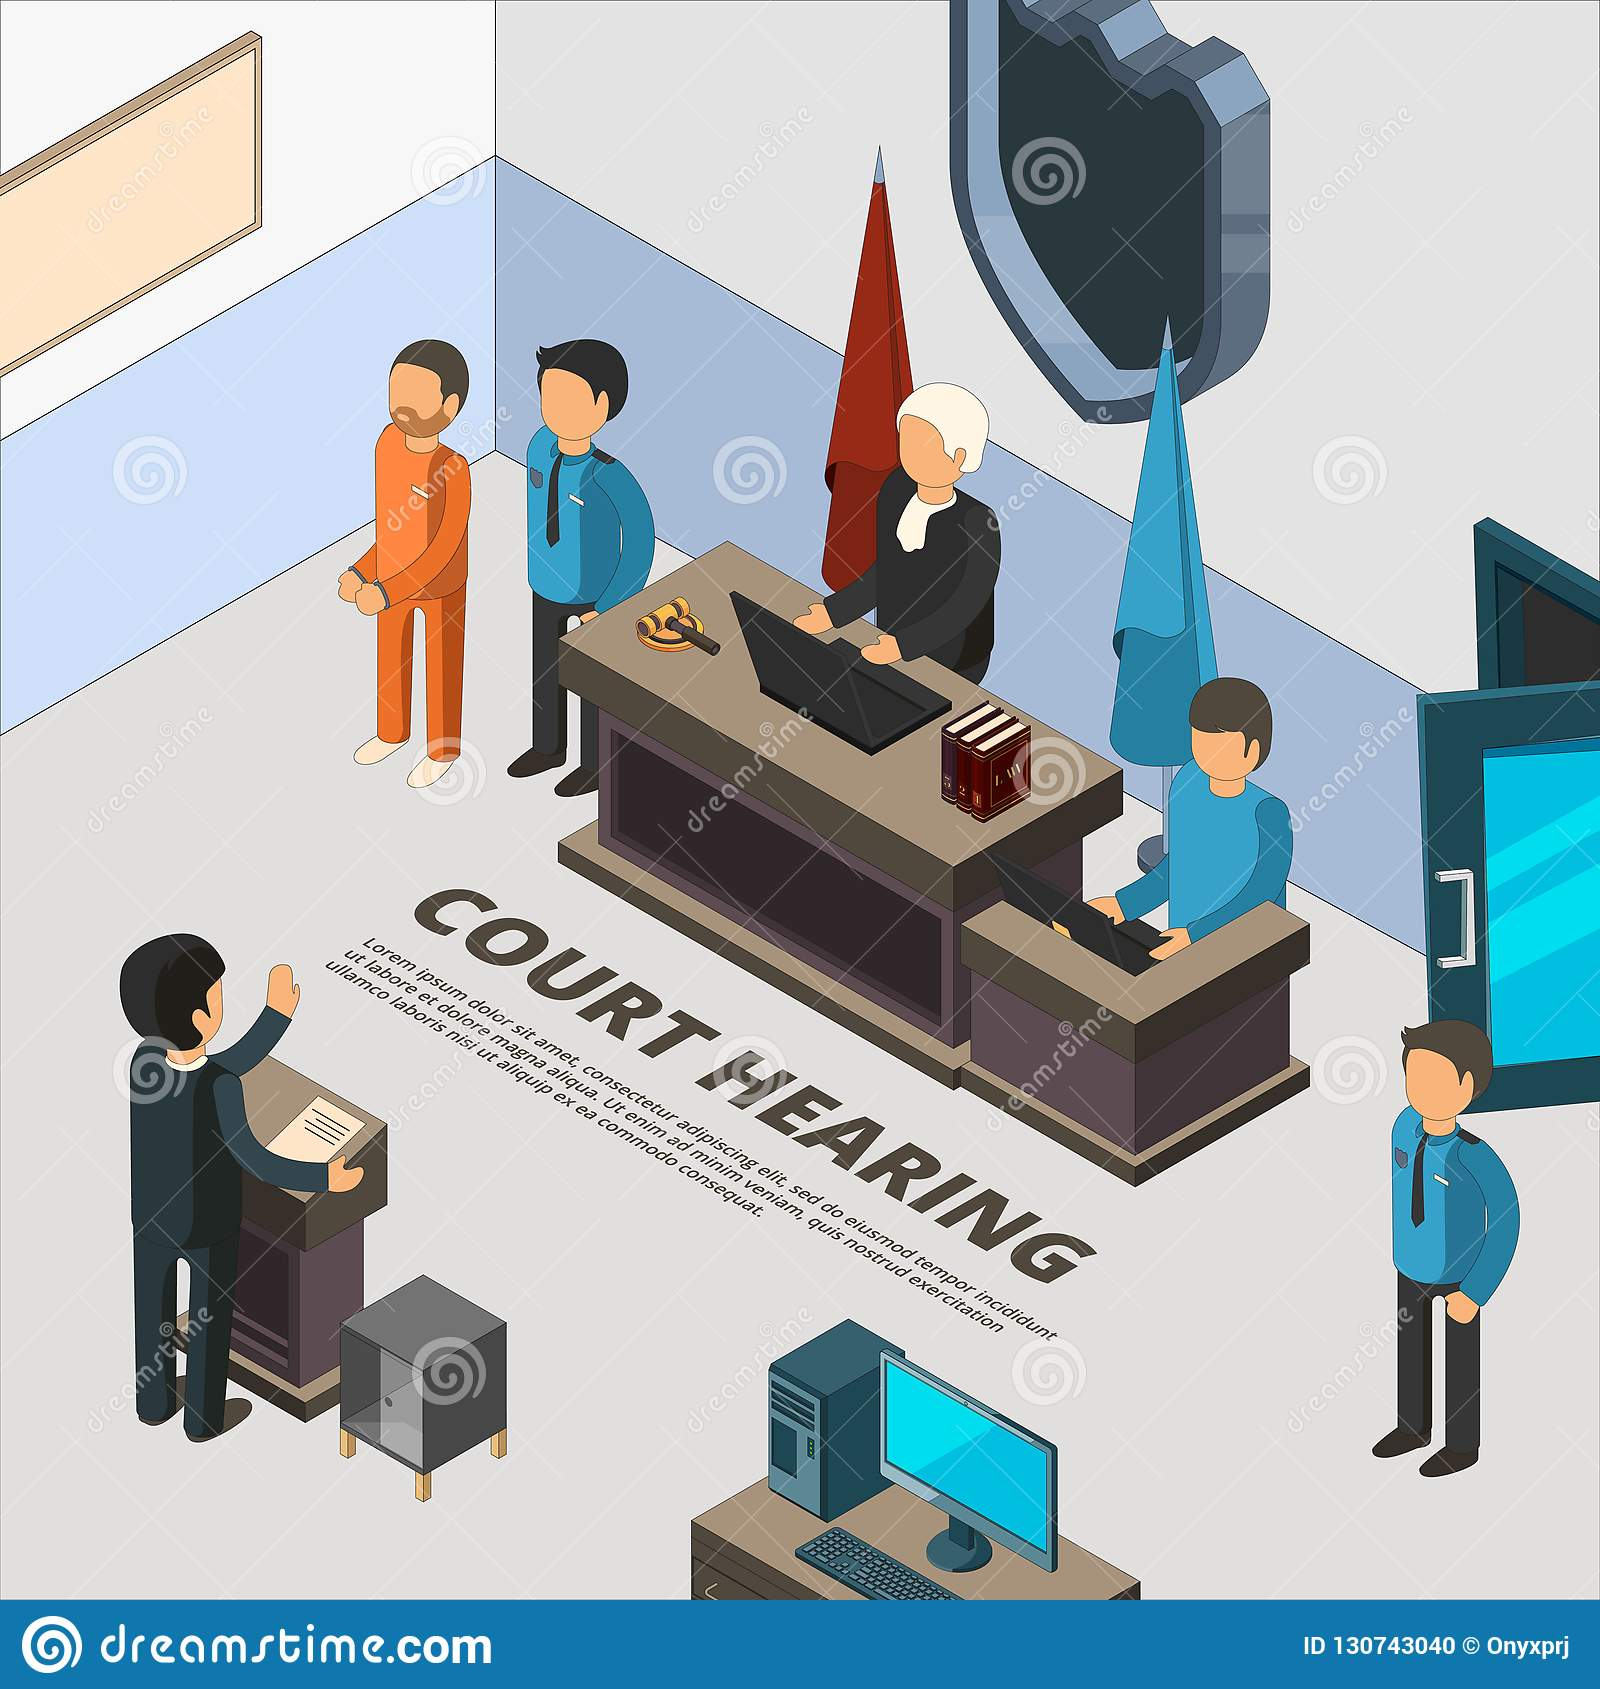 Court session banners. Law process in judicial defendant police and crime interrogation isometric symbols vector